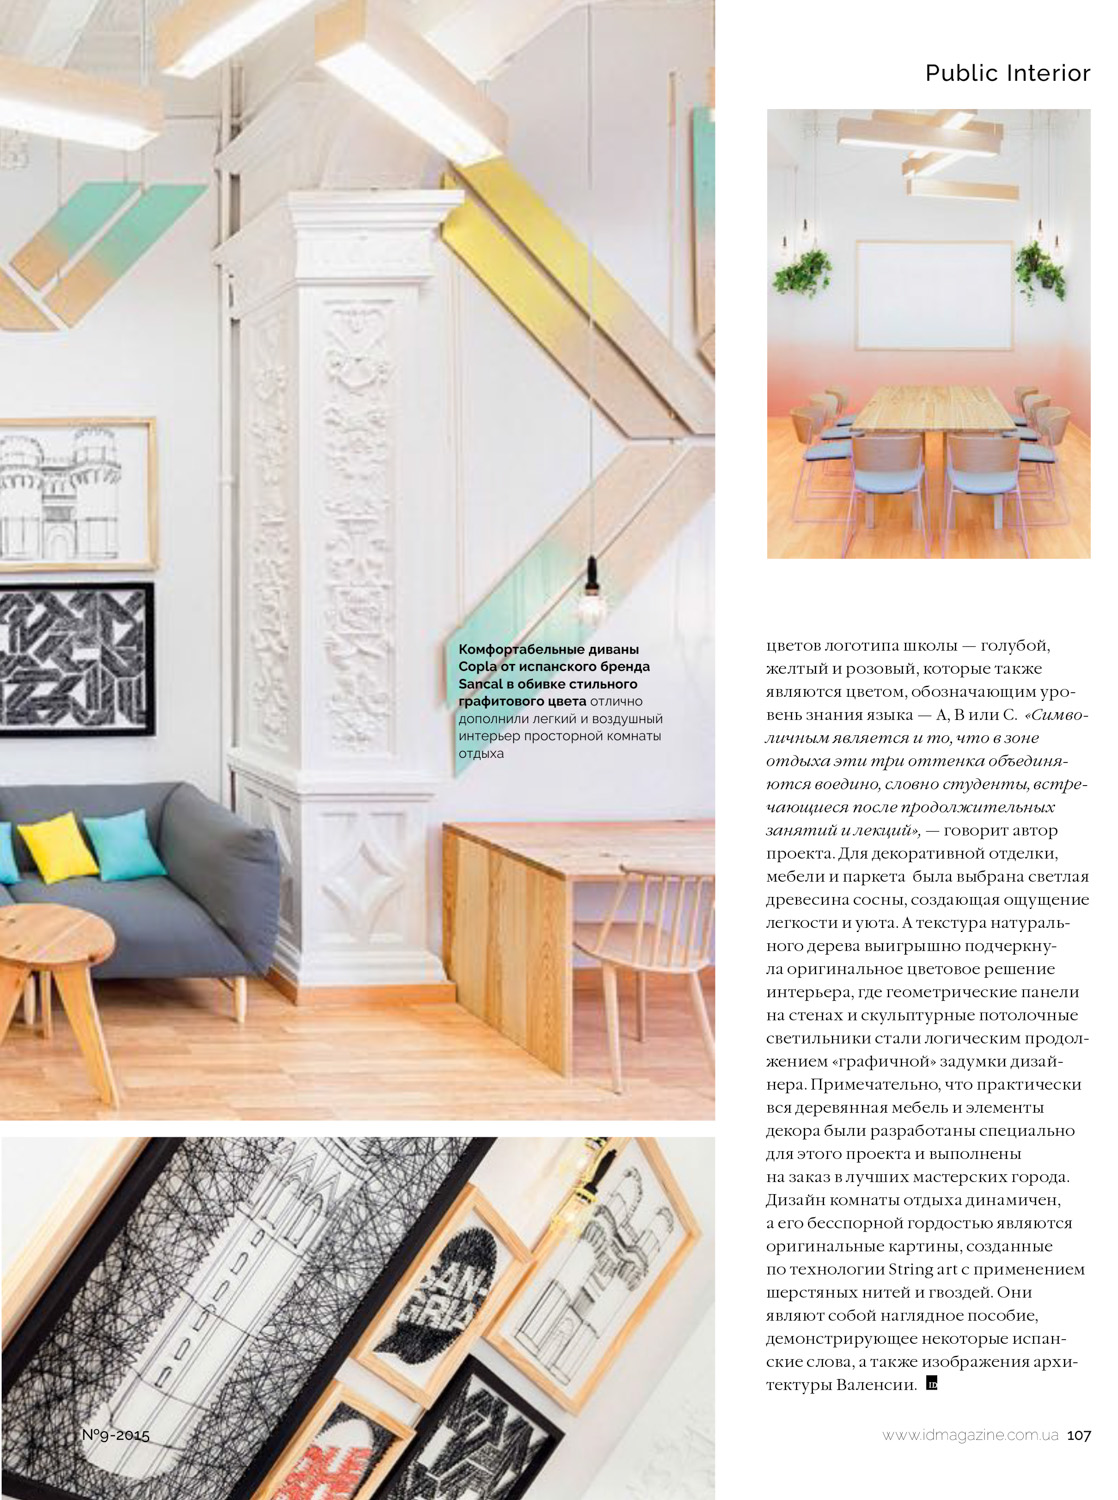 interior-design-masquespacio-2day-languages-6